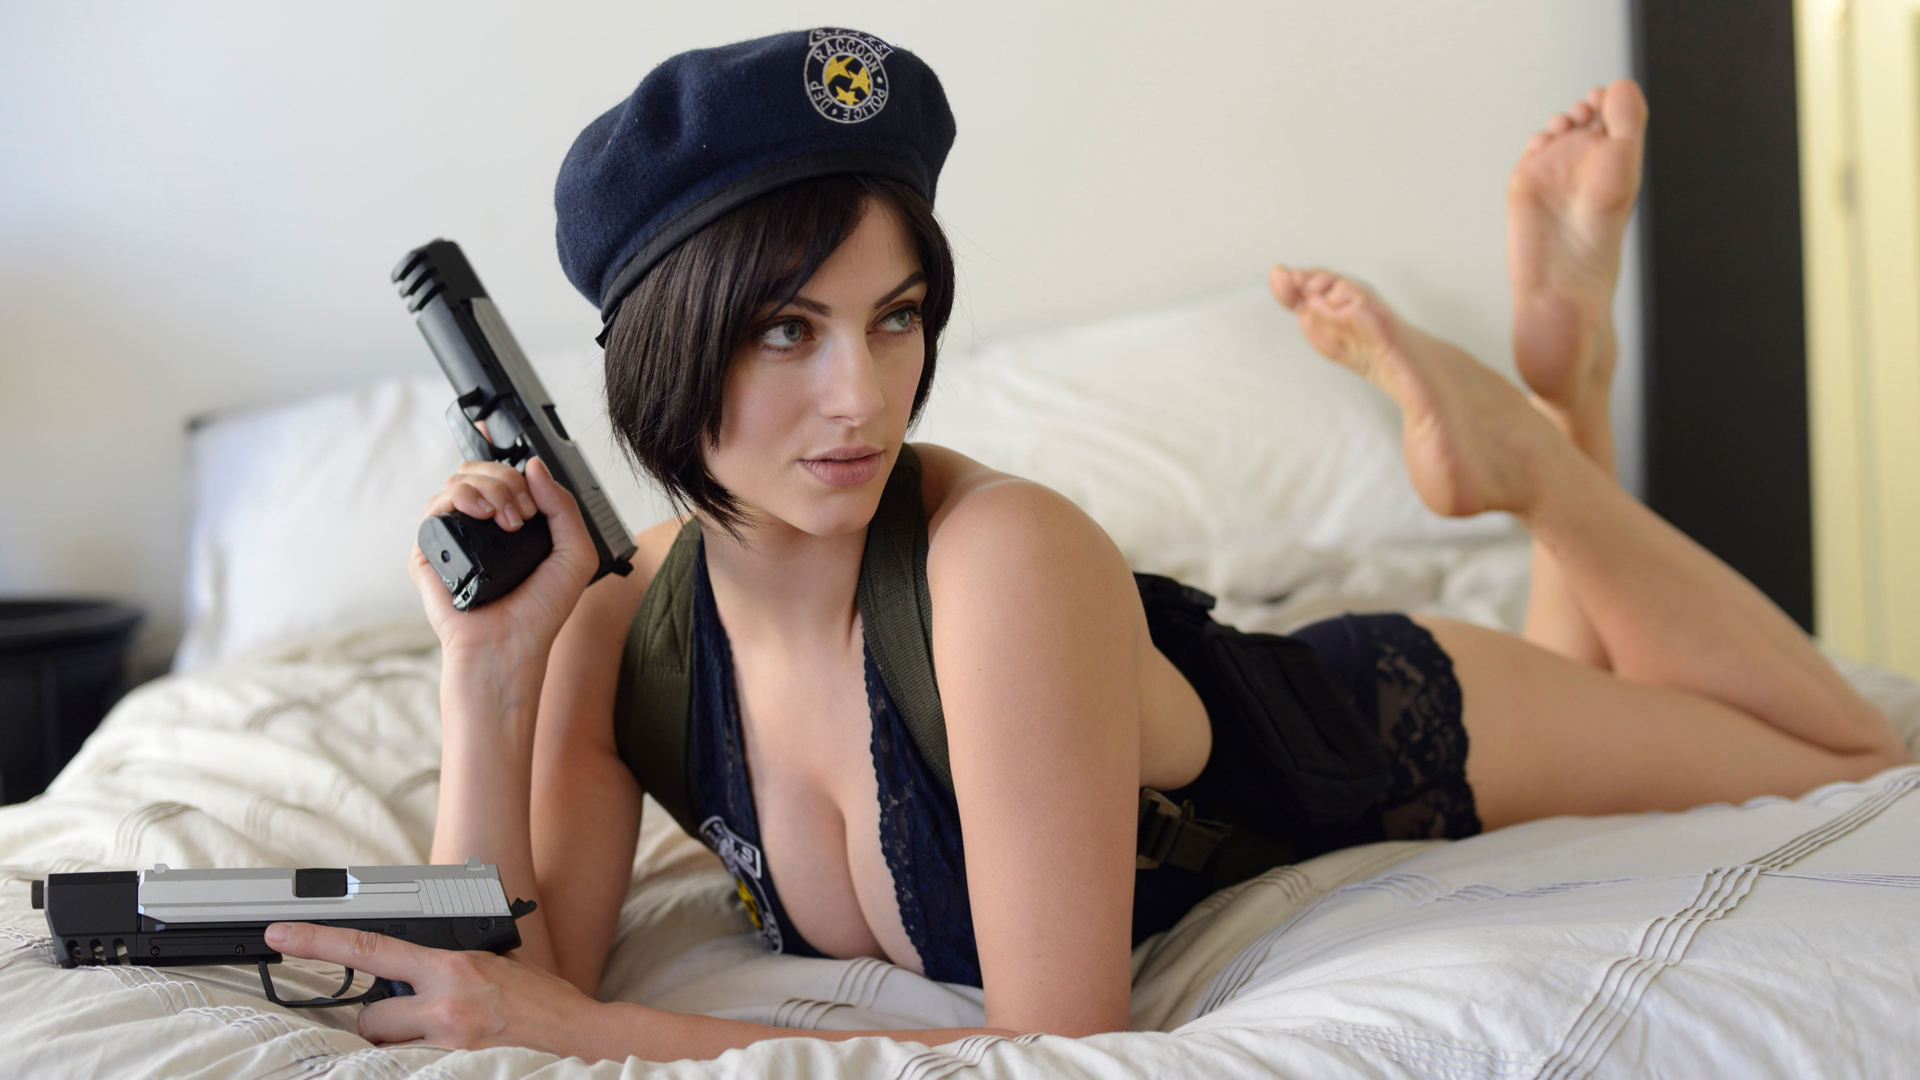 Julia Roberts Hd Wallpapers Jill Valentine In Bed With Guns Ps4wallpapers Com